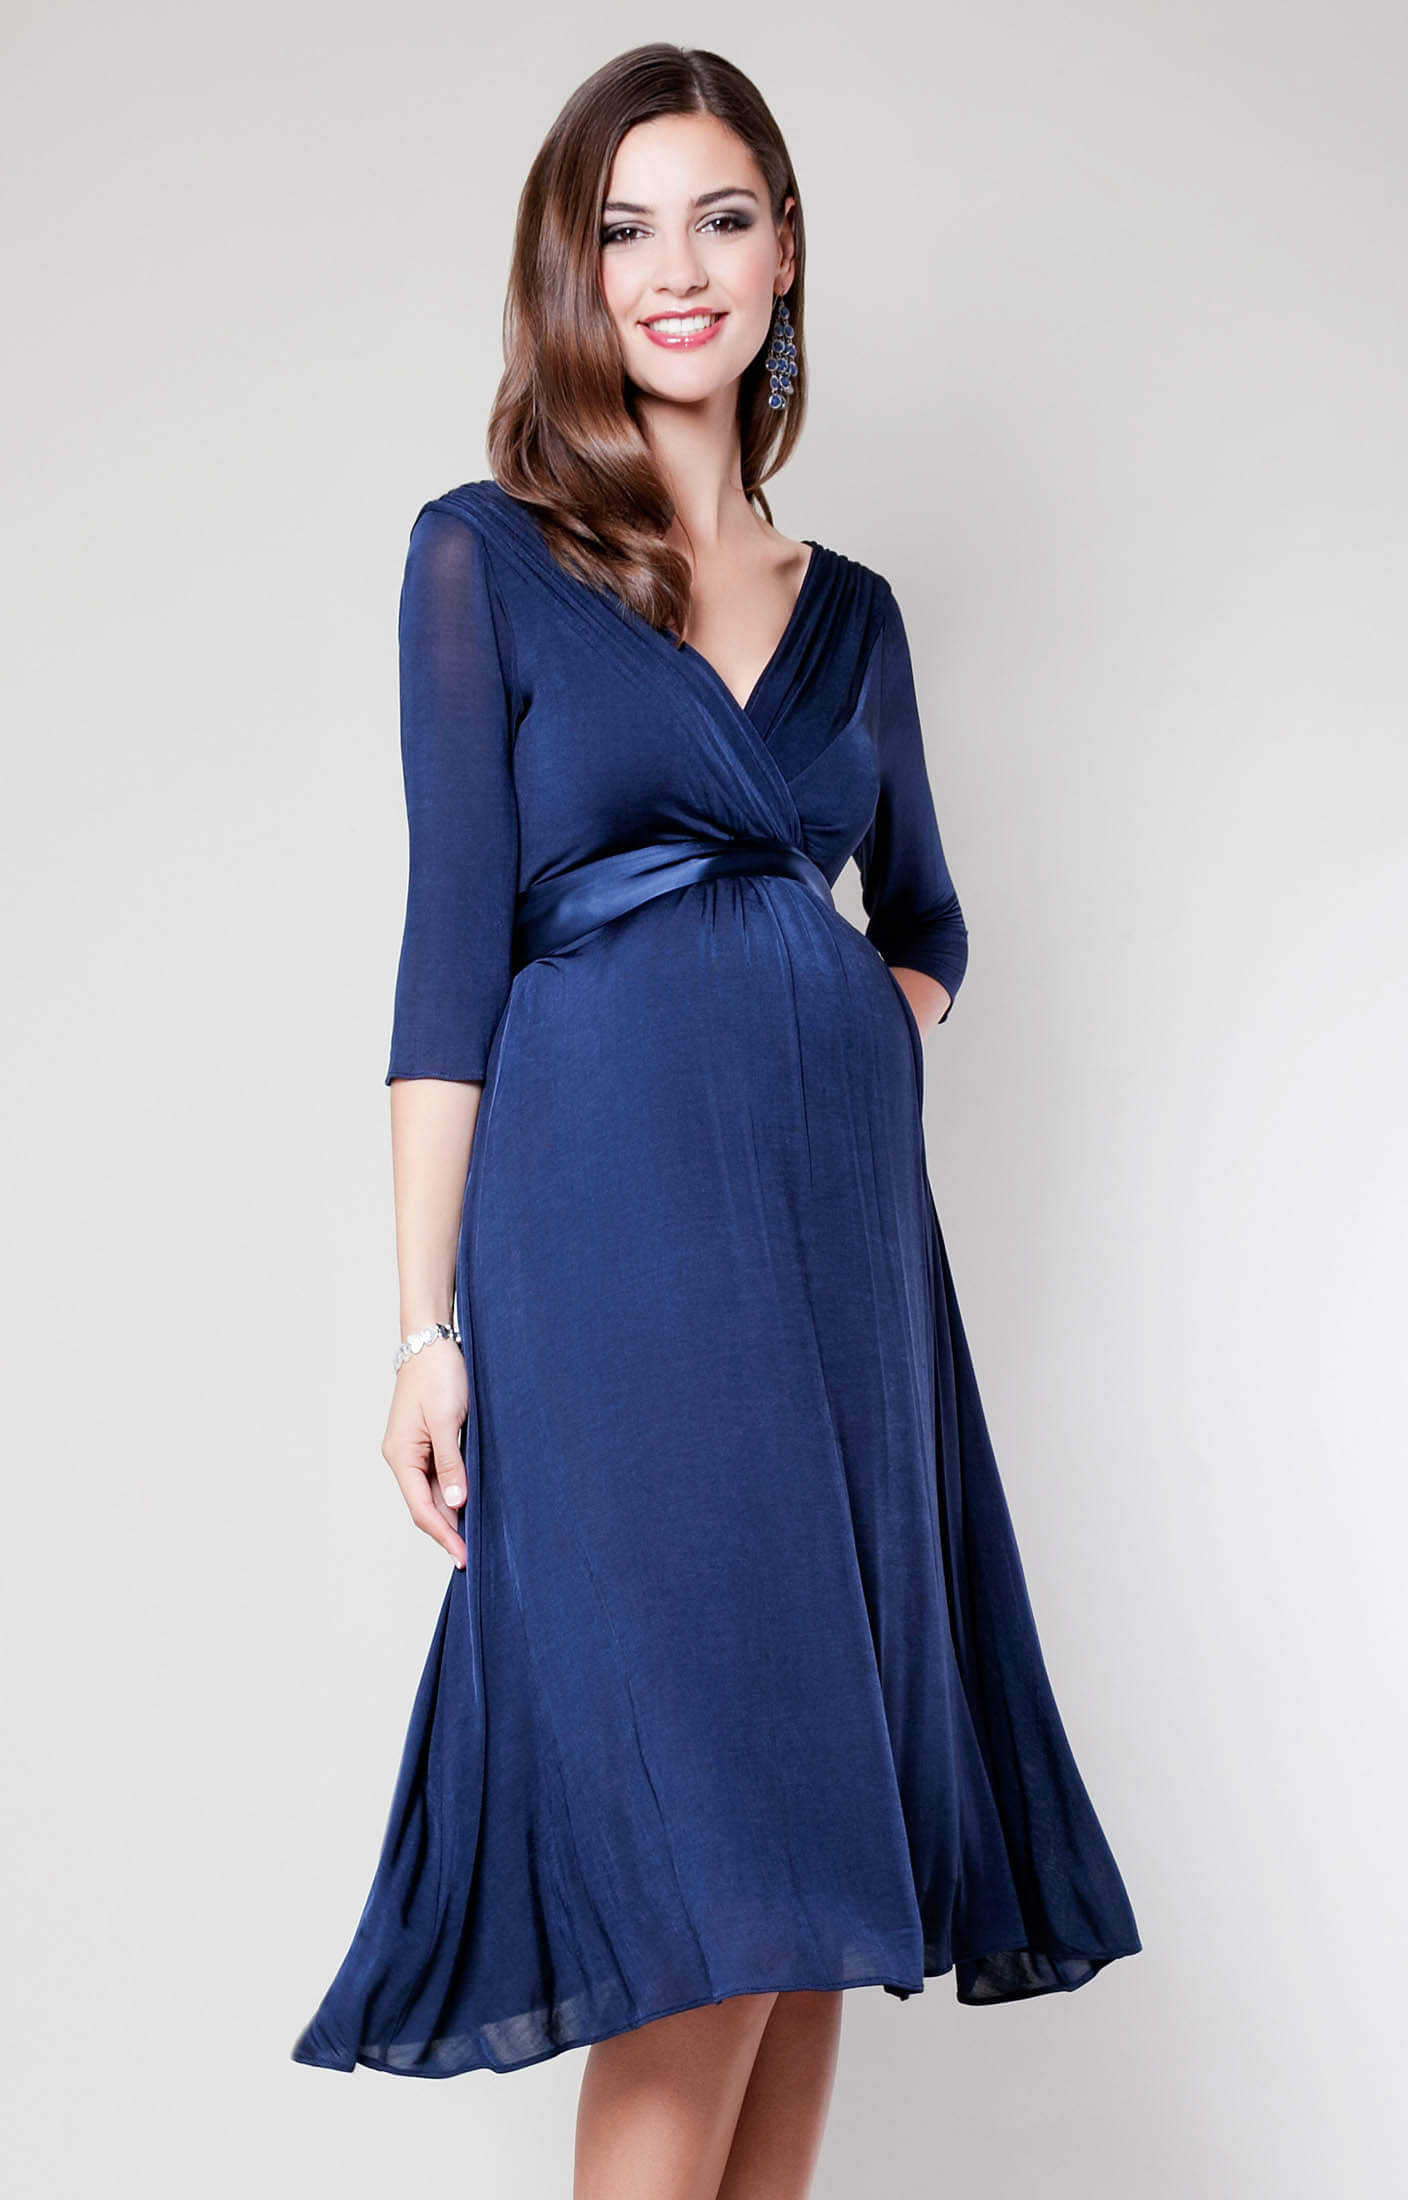 Willow Maternity Dress (Midnight Blue) maternity wedding guest dresses Willow Maternity Dress Midnight Blue by Tiffany Rose